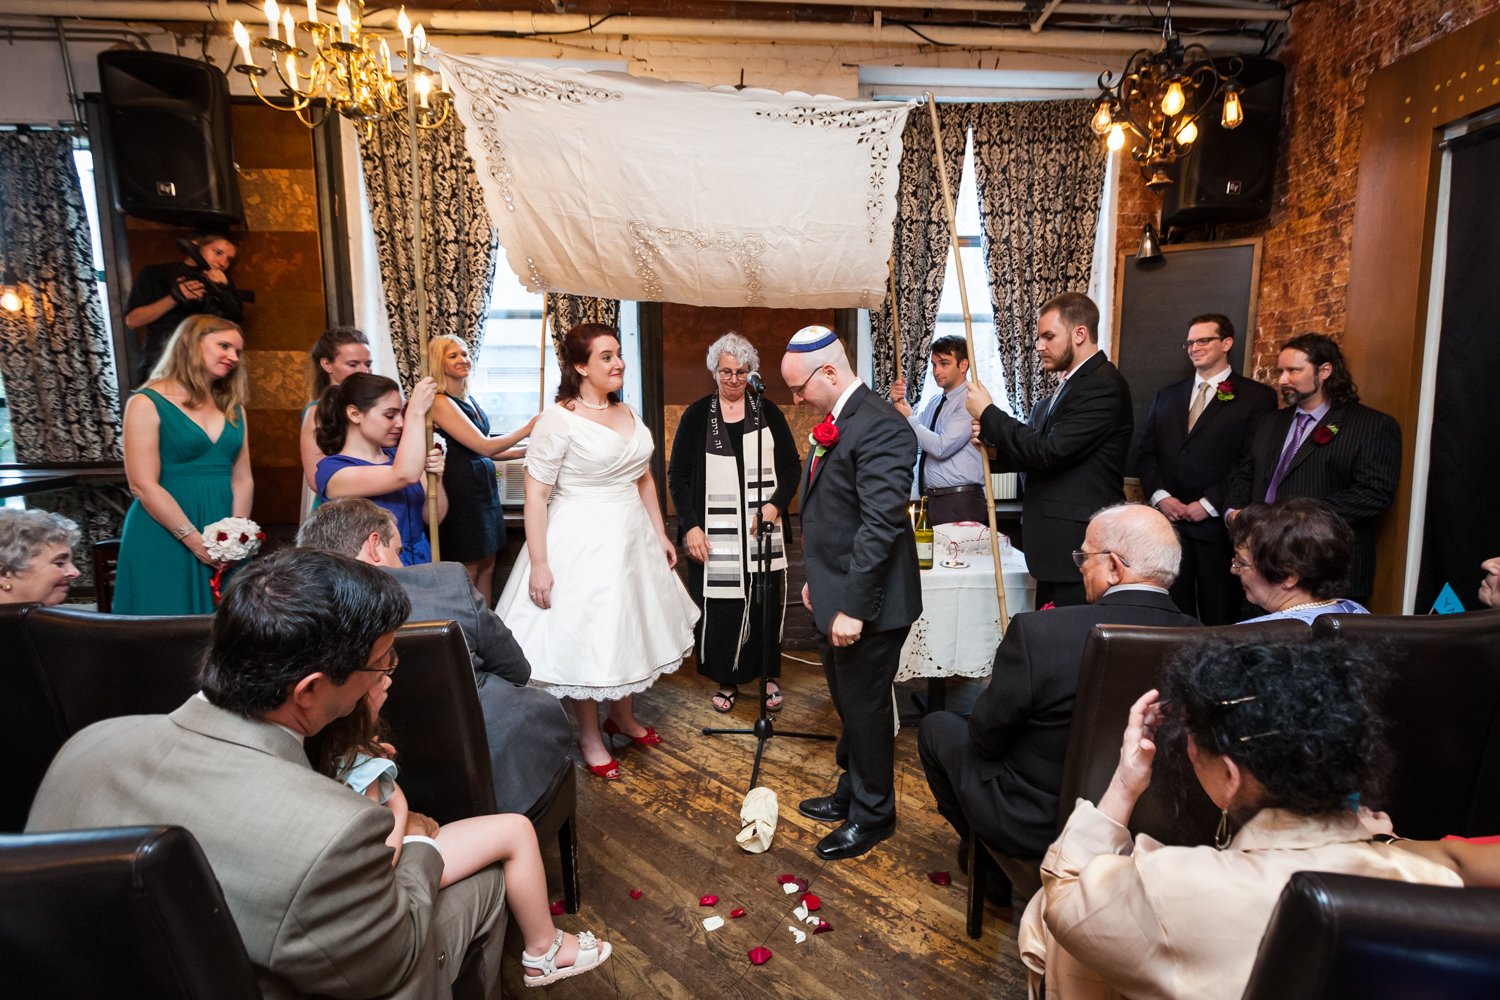 Jewish wedding ceremony with groom about to step on glass at a DUMBO wedding